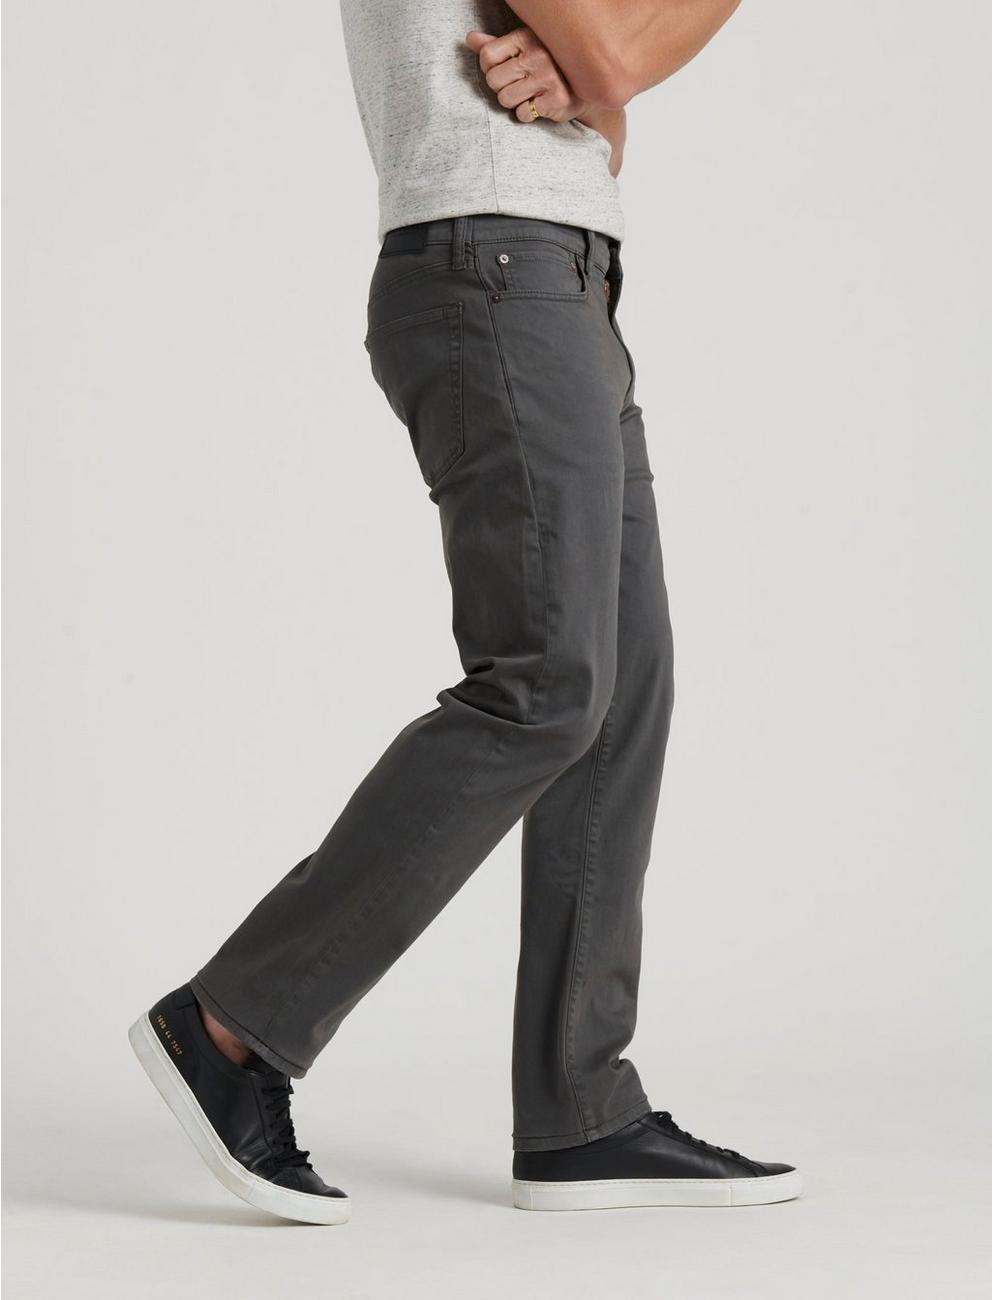 121 SLIM STRAIGHT SATEEN STRETCH JEAN, ONYX